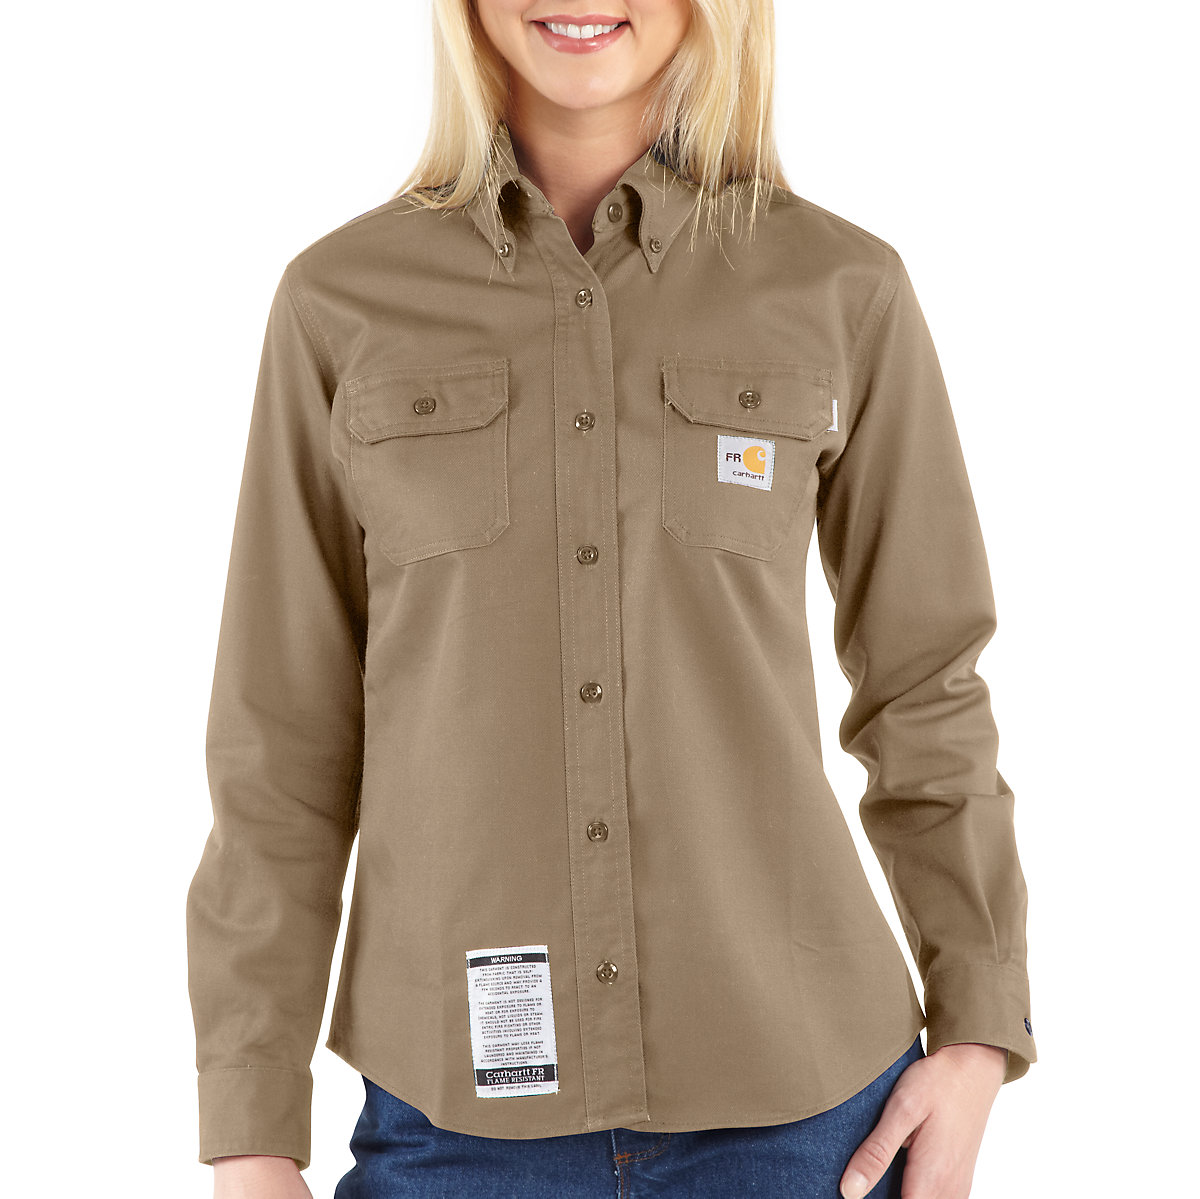 Fire resistant clothing for women